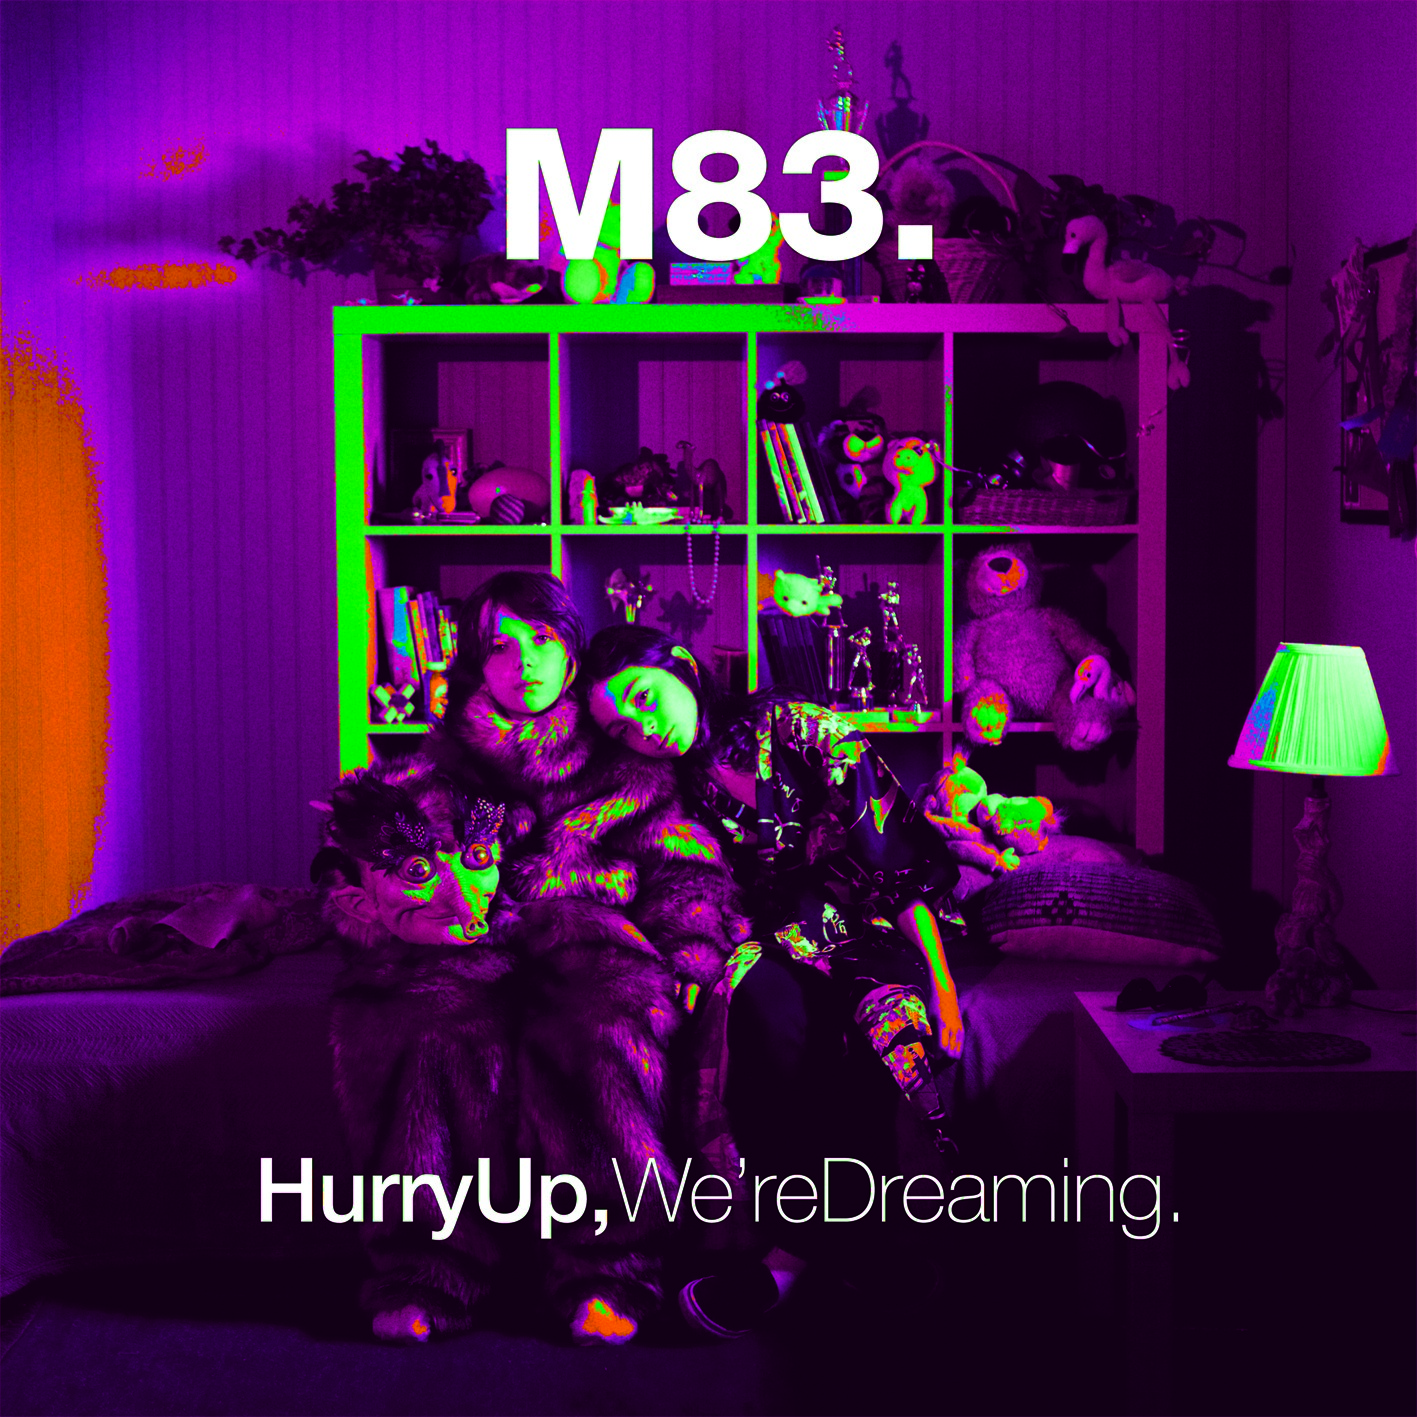 M83 Hurry Up We're Dreaming